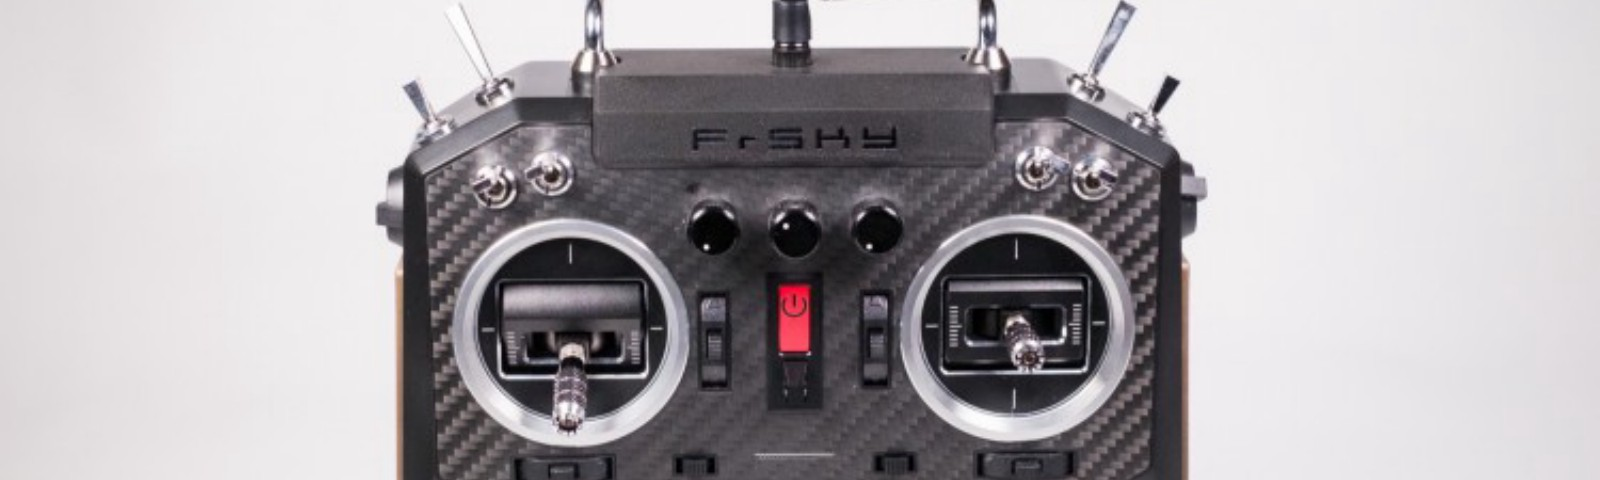 Review: New FrSky Horus X10S Radio Transmitter